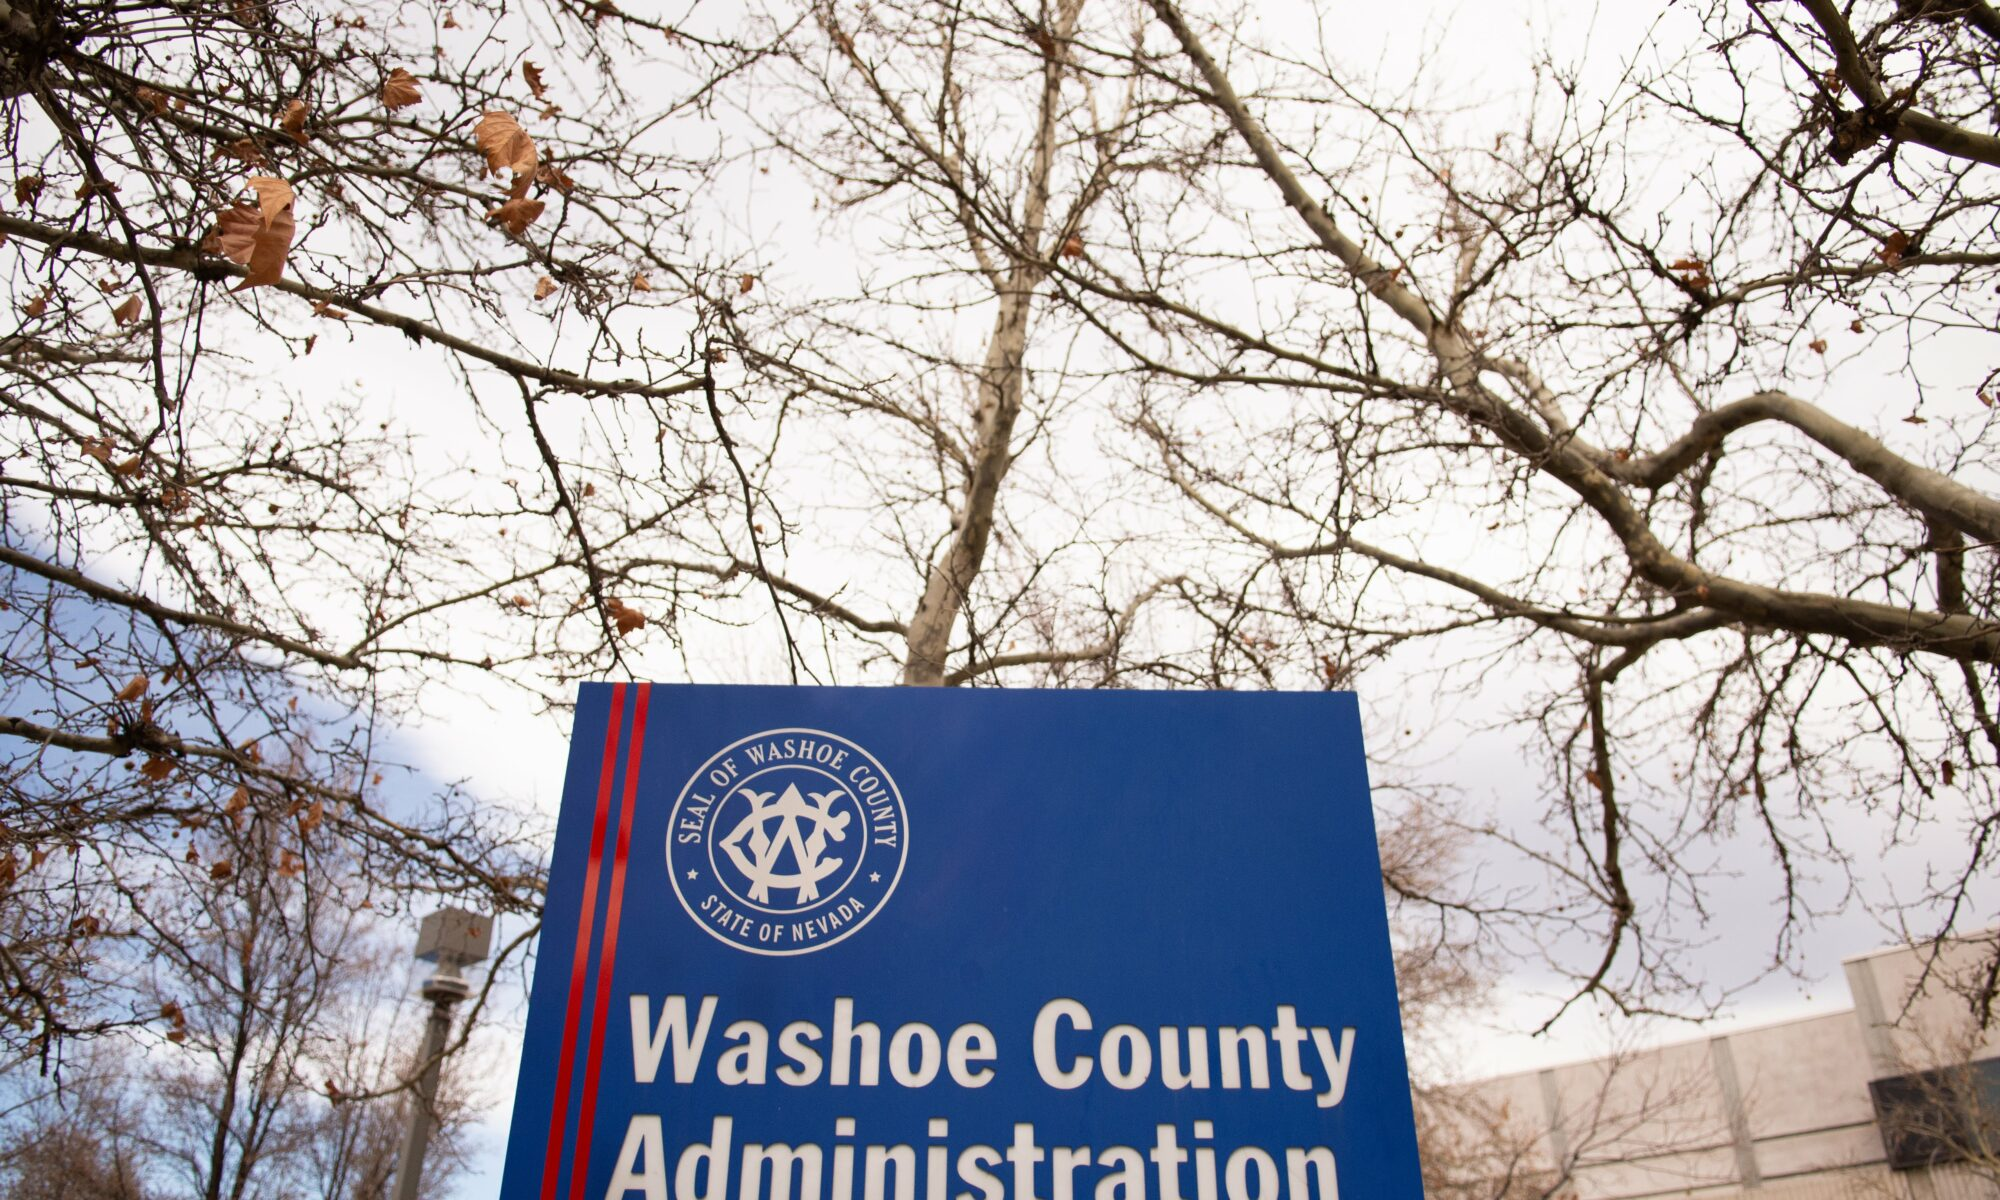 Washoe County building sign